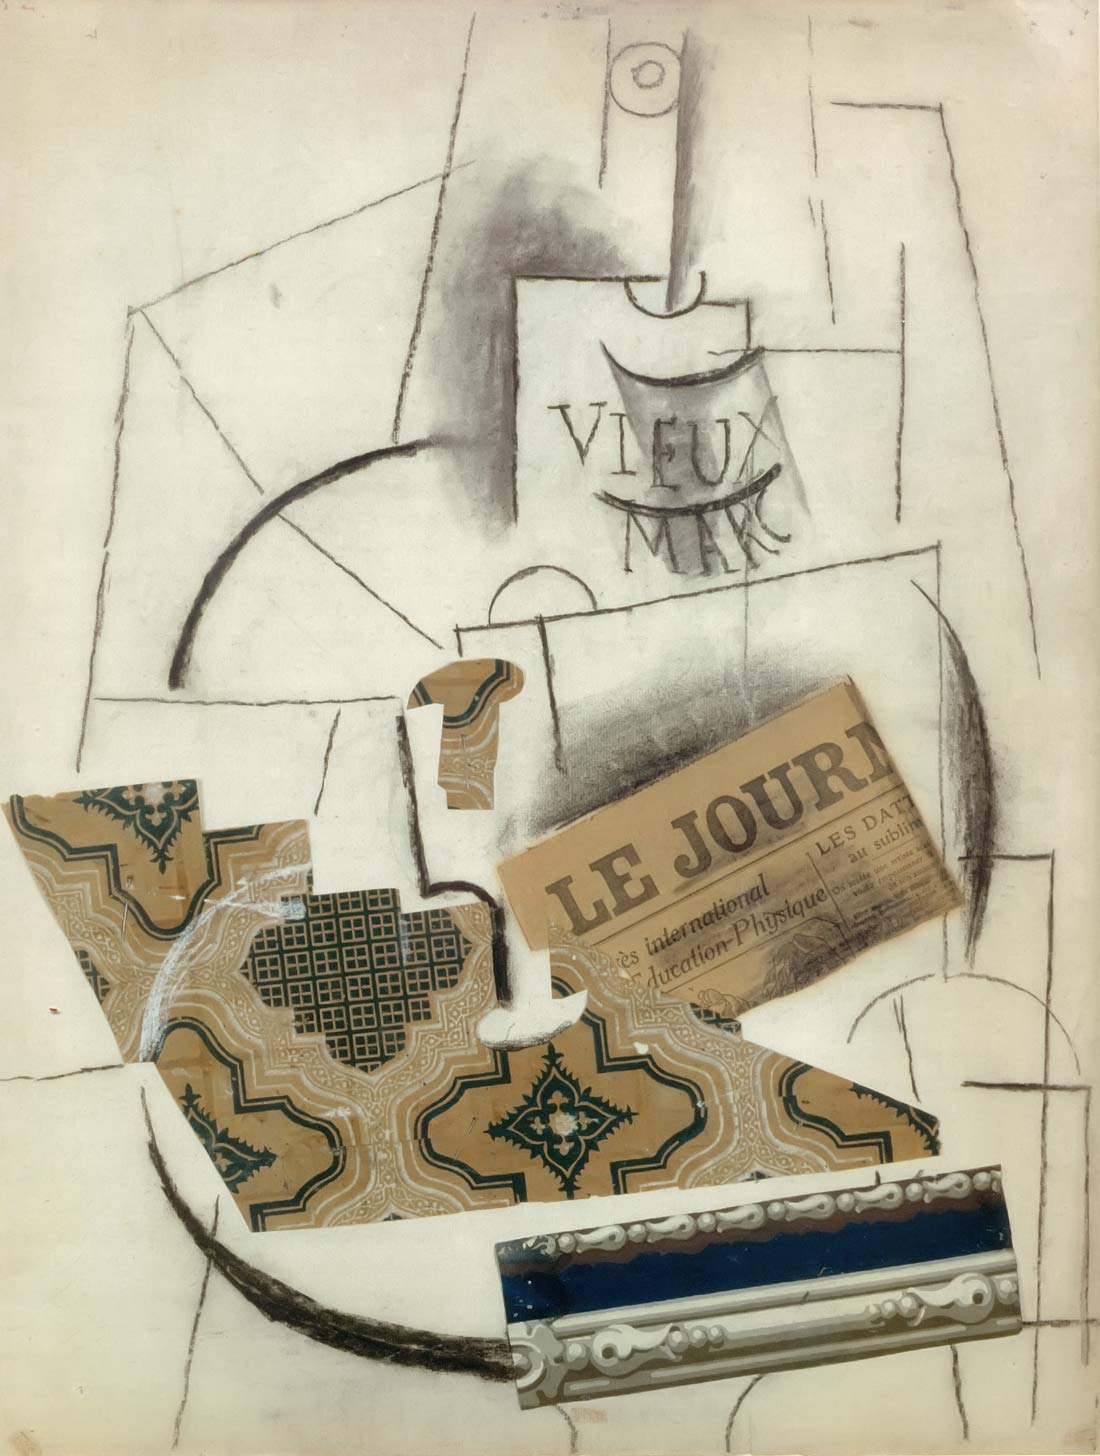 The Bottle Of Vieux Marc Pablo Picasso